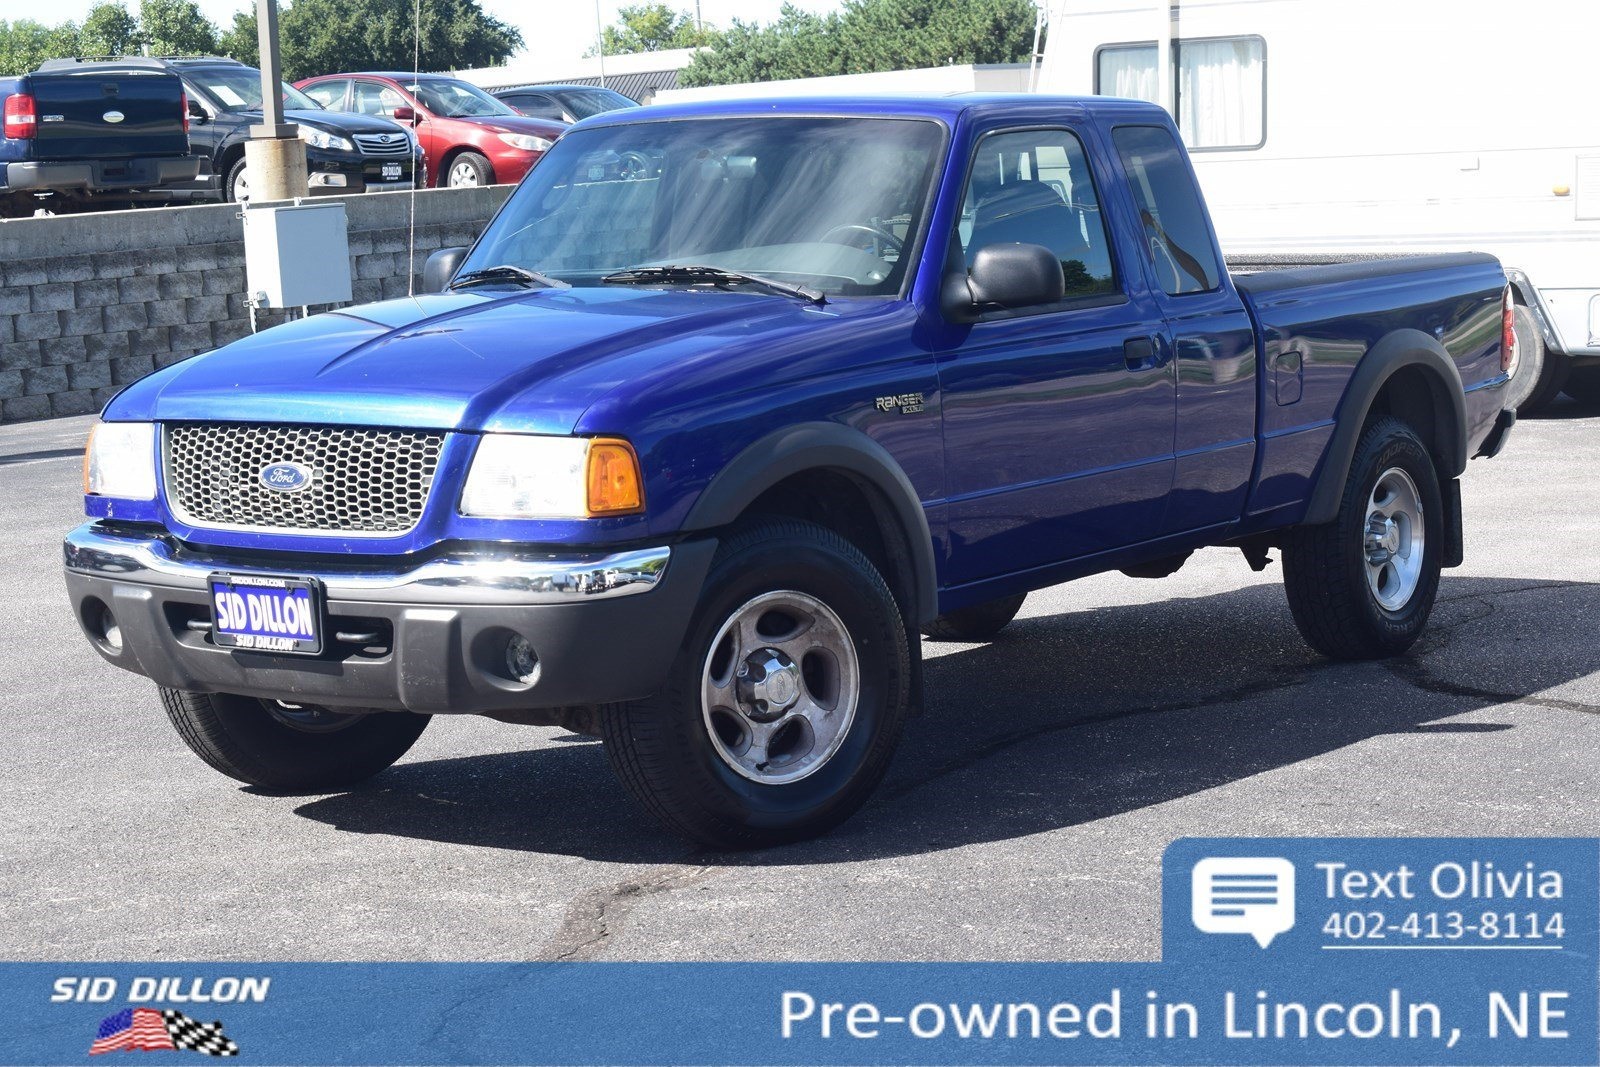 Preowned 2003 Ford Ranger Xlt Extended Cab In Lincoln 4n18747t. Preowned 2003 Ford Ranger Xlt. Ford. 2003 Ford Ranger Extended Cab Parts Diagram At Scoala.co